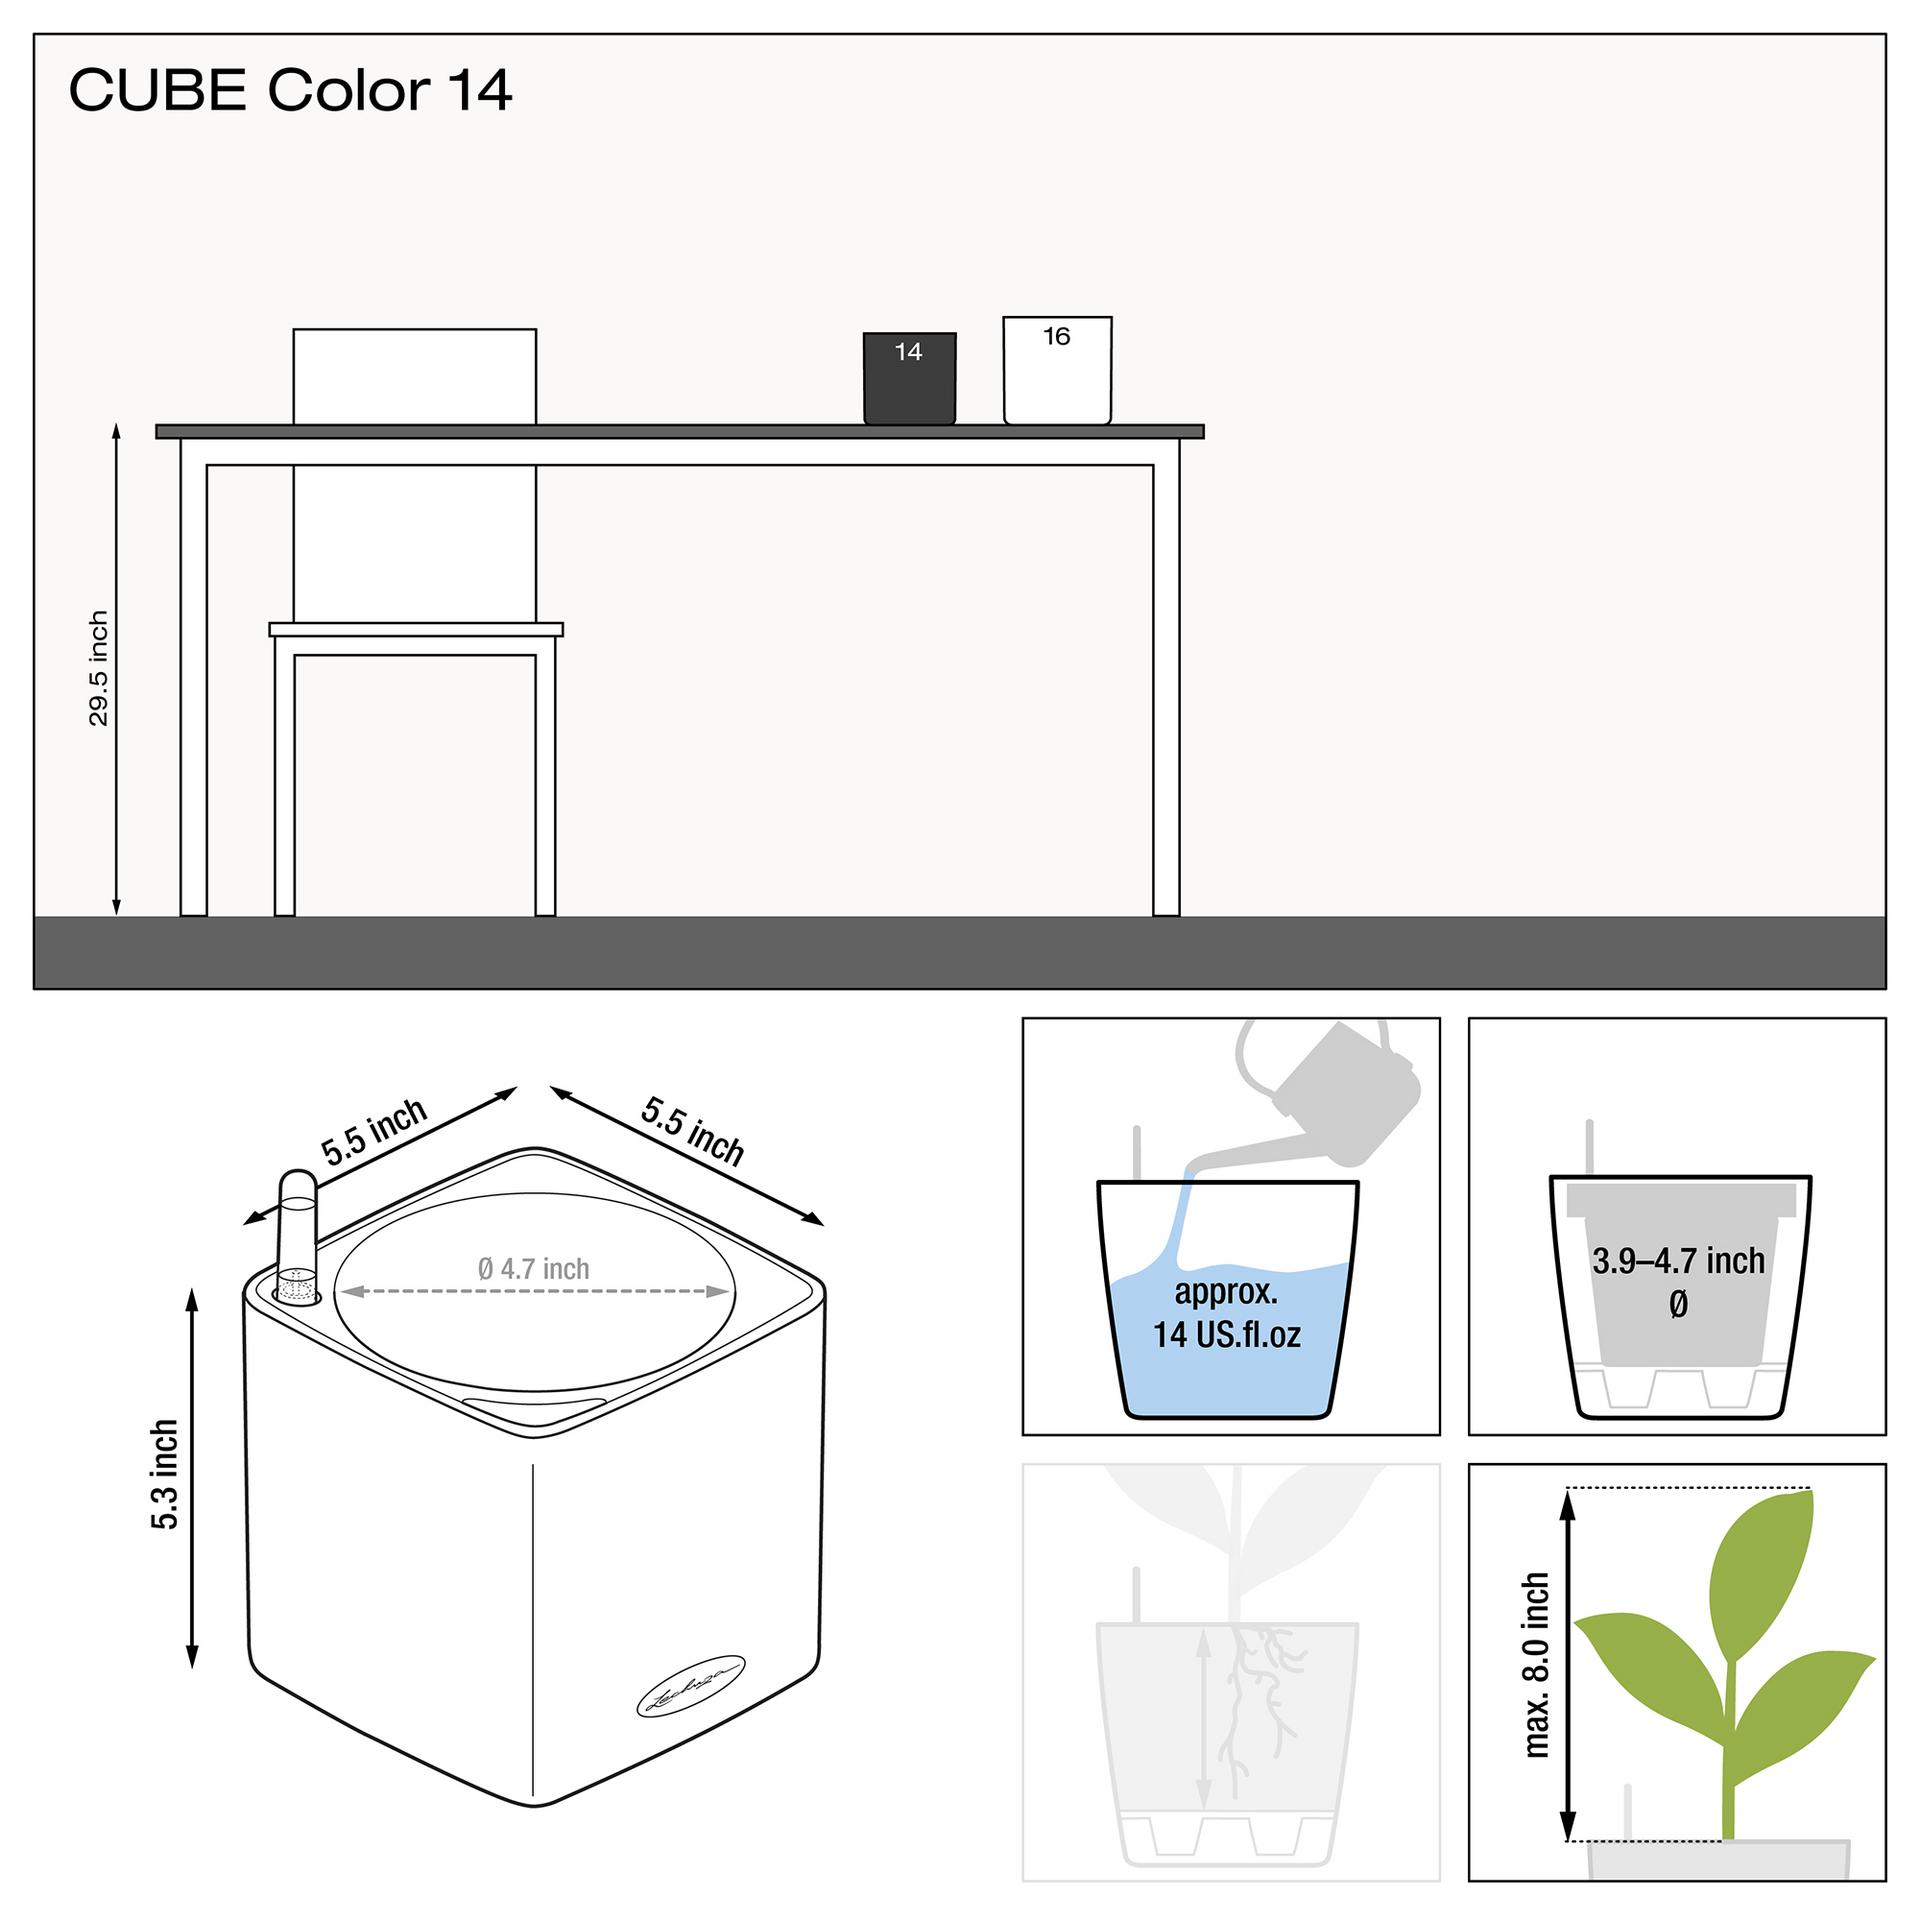 le_cube-color14_product_addi_nz_us